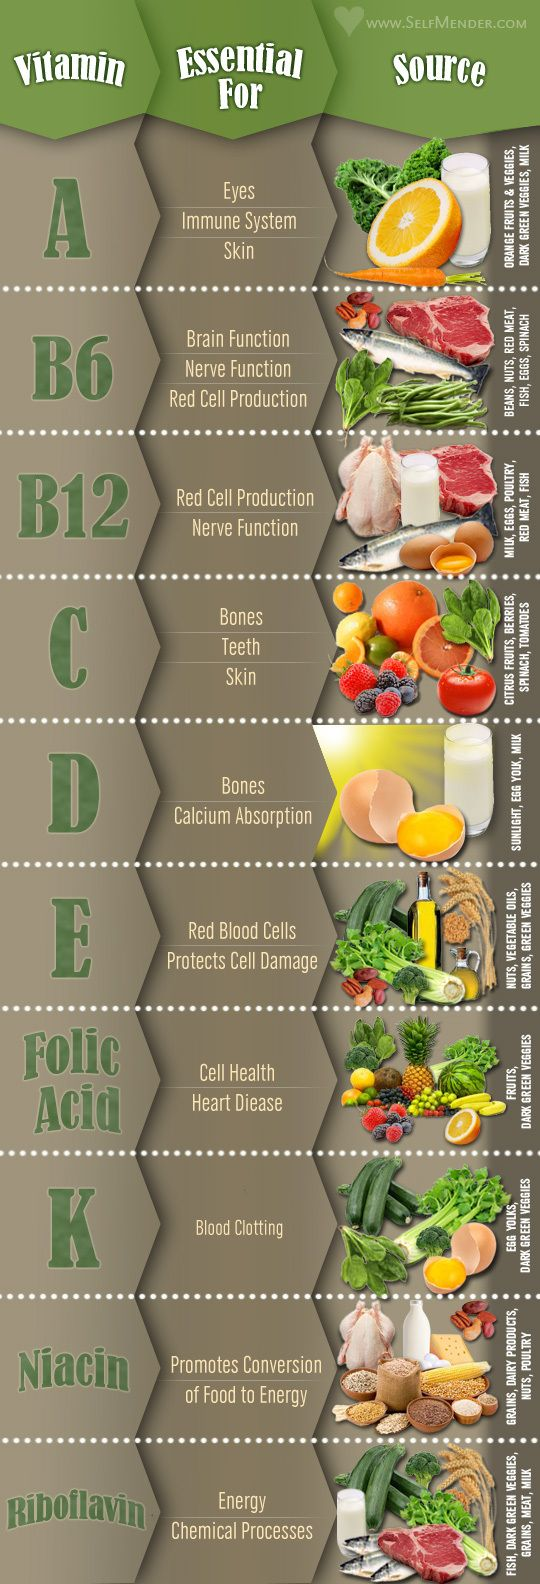 Quick Vitamin to Food guide